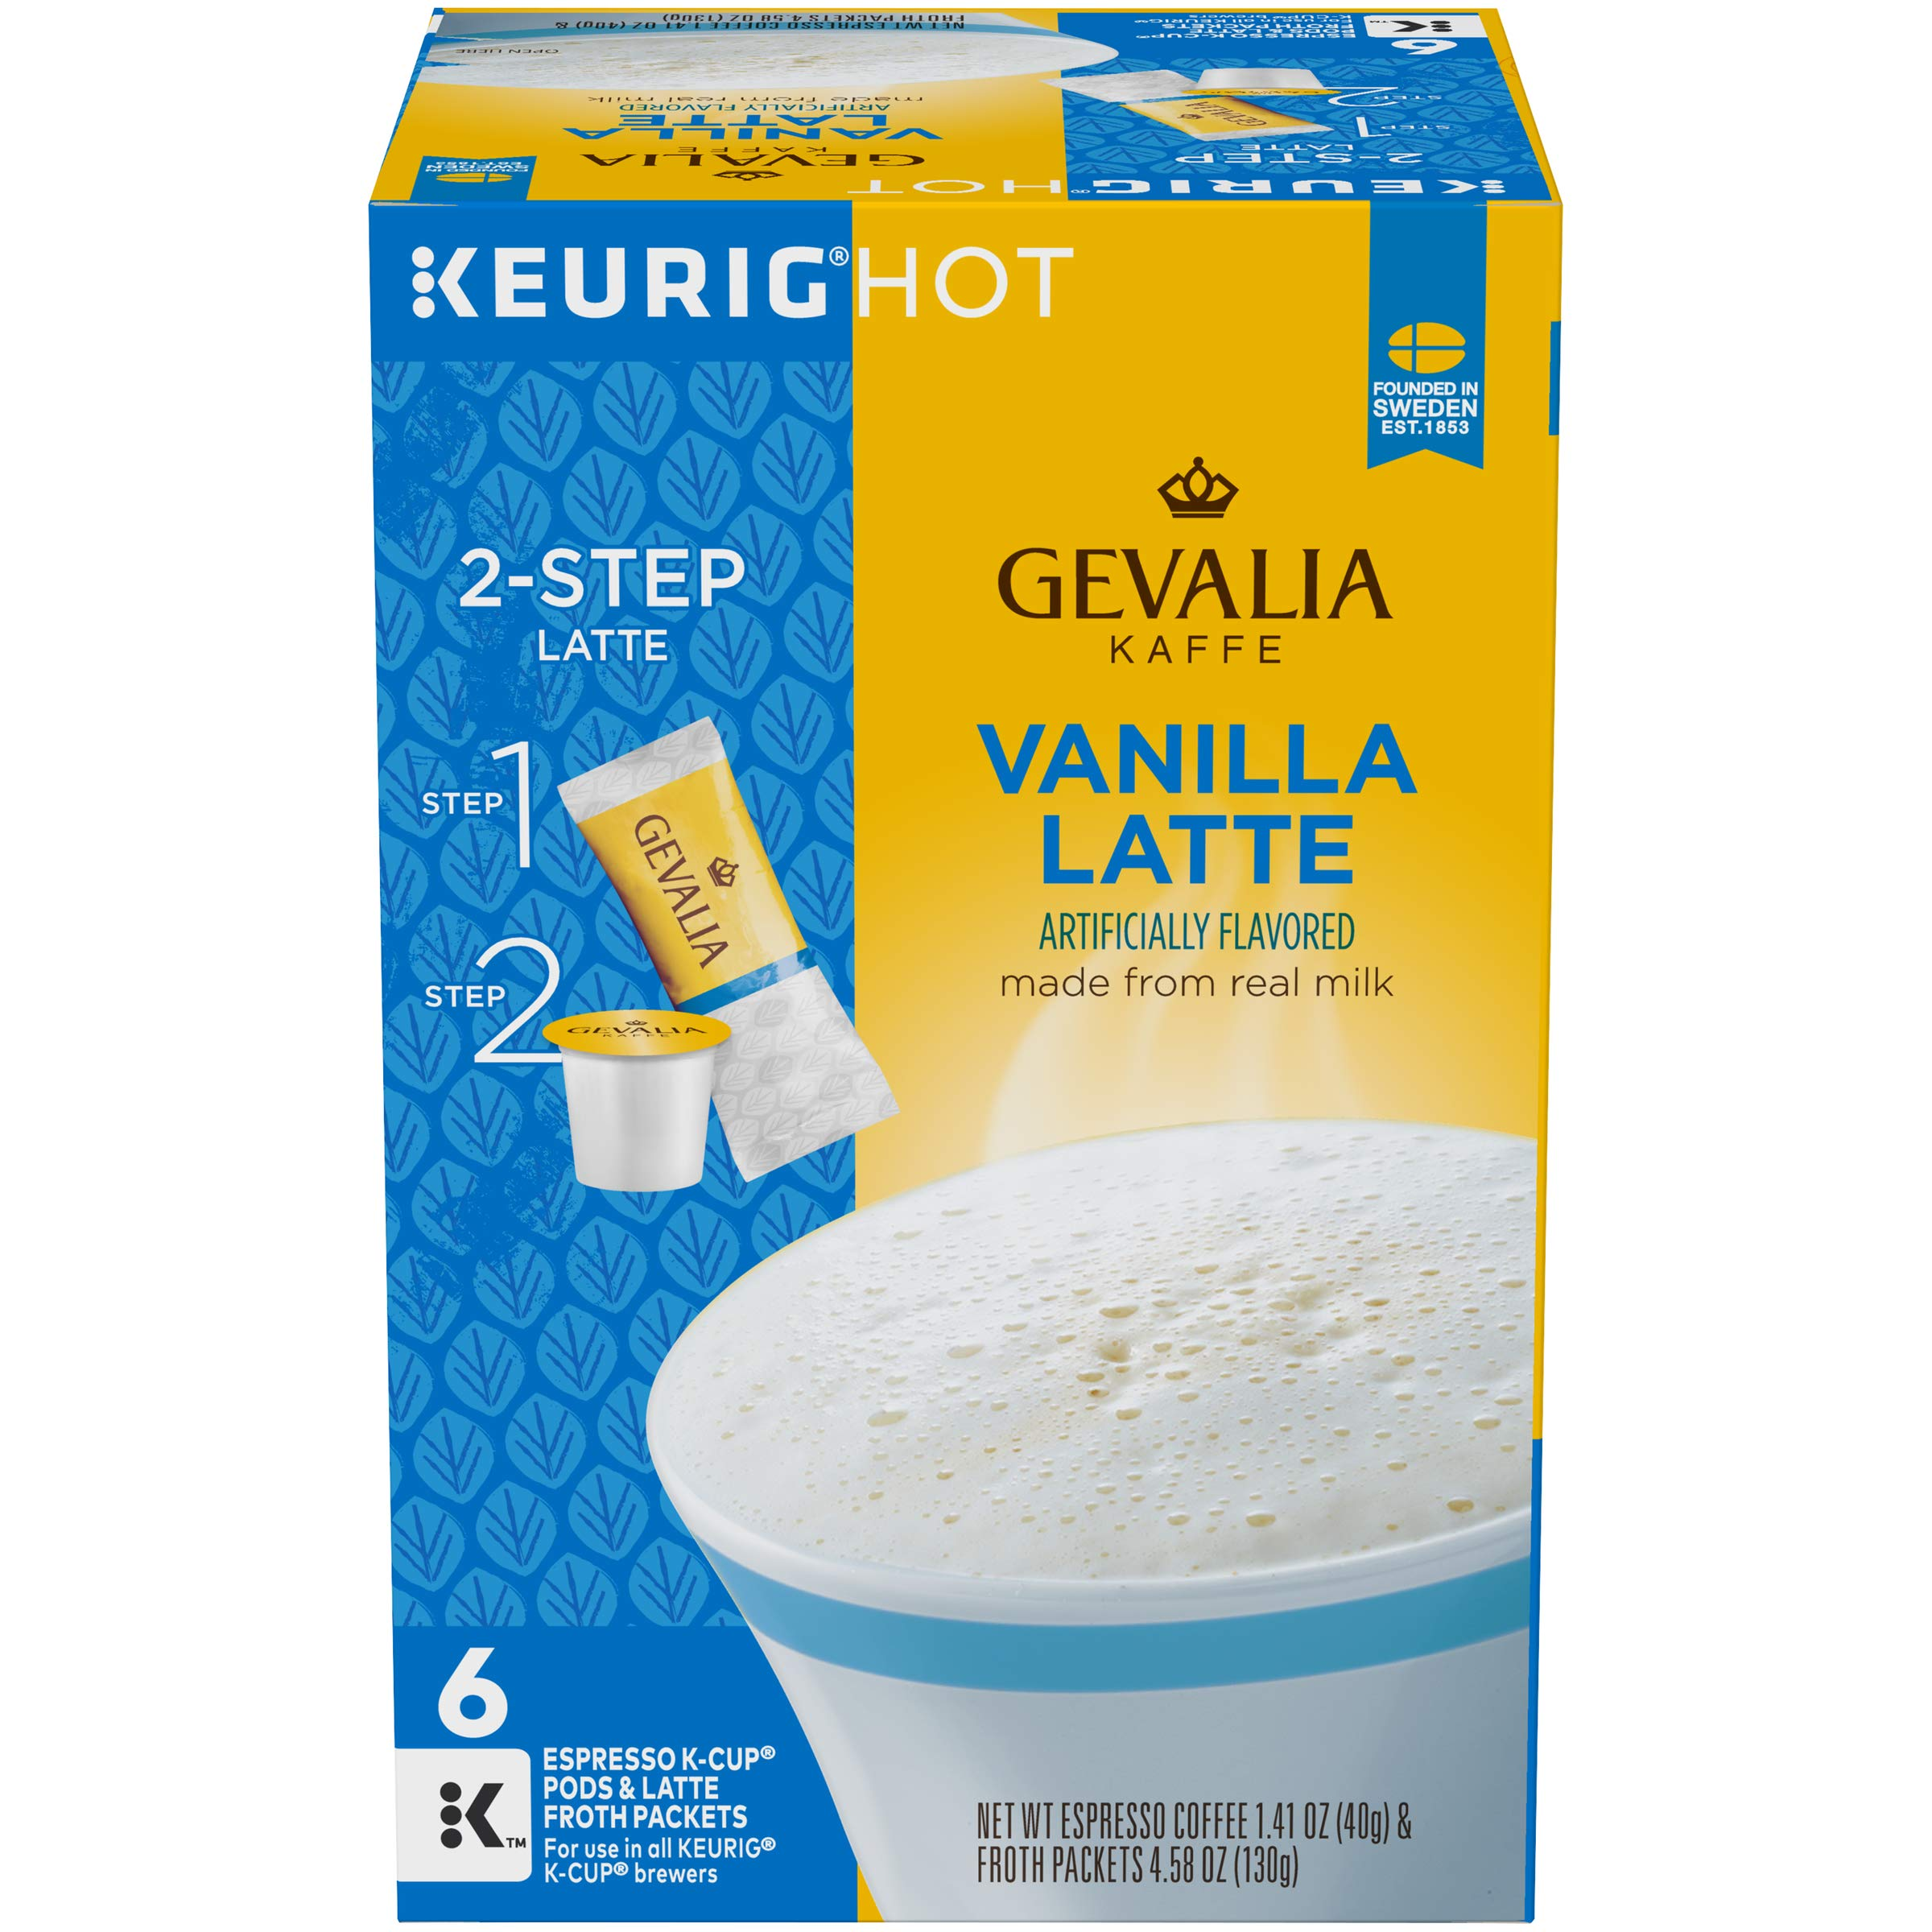 Gevalia Vanilla Latte K-Cup Packs and Froth Packets, 36 count (6 boxes of 6)